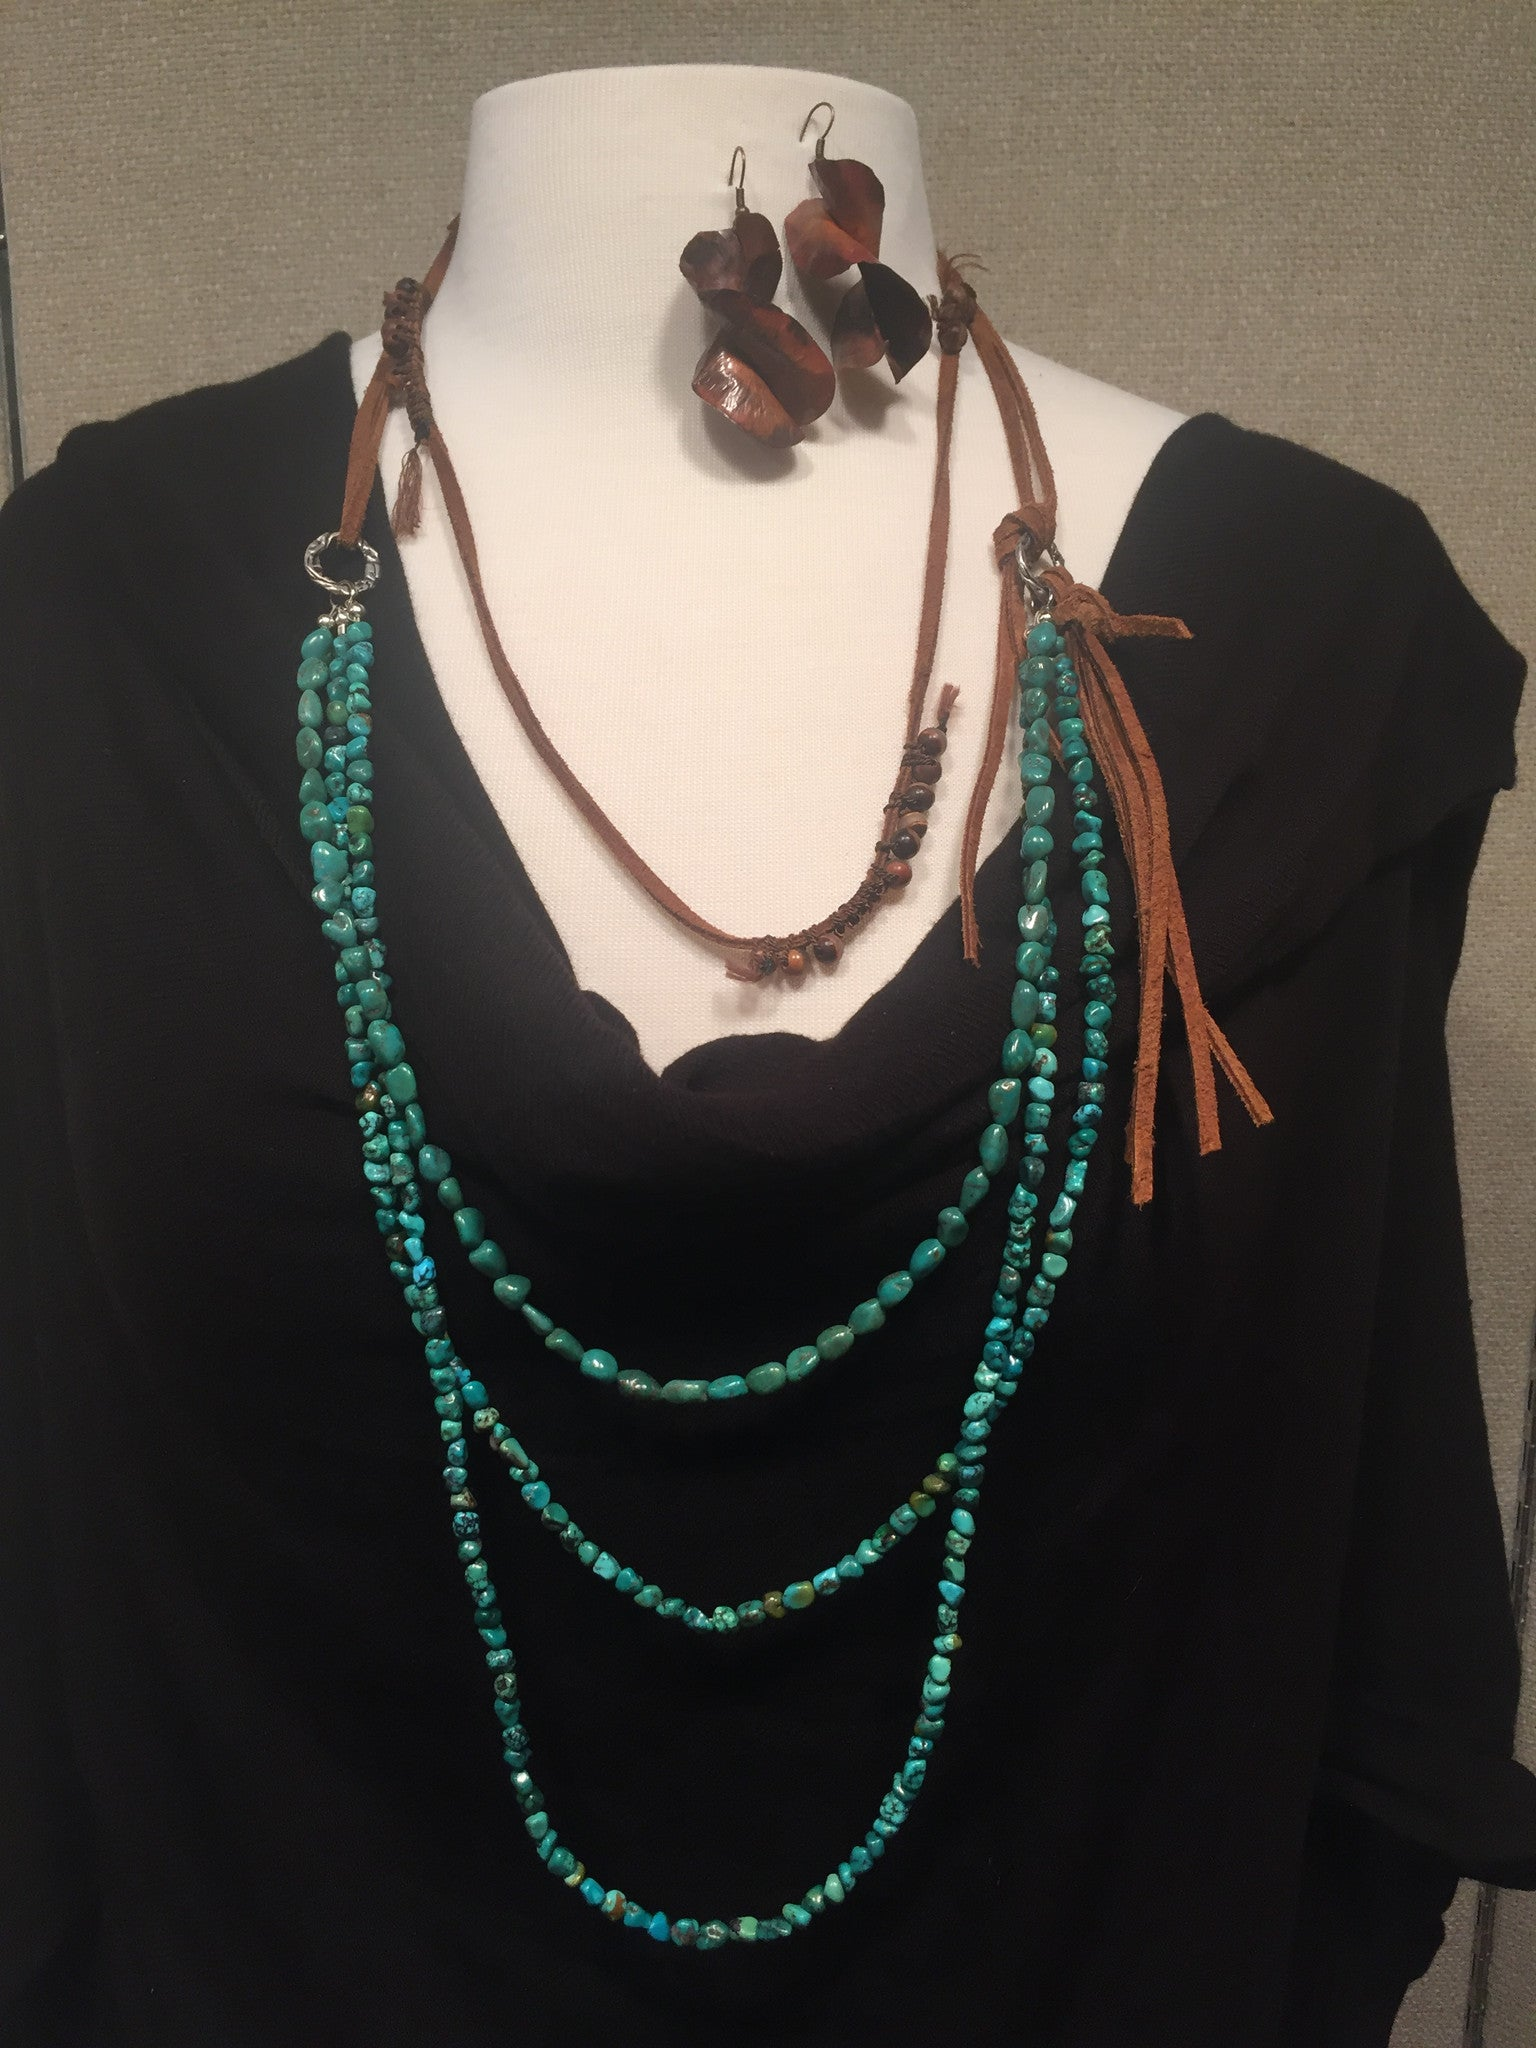 Rustic Leather, Turquoise, Patina Copper, Tibetan Bead Layered Neck and Ear Set